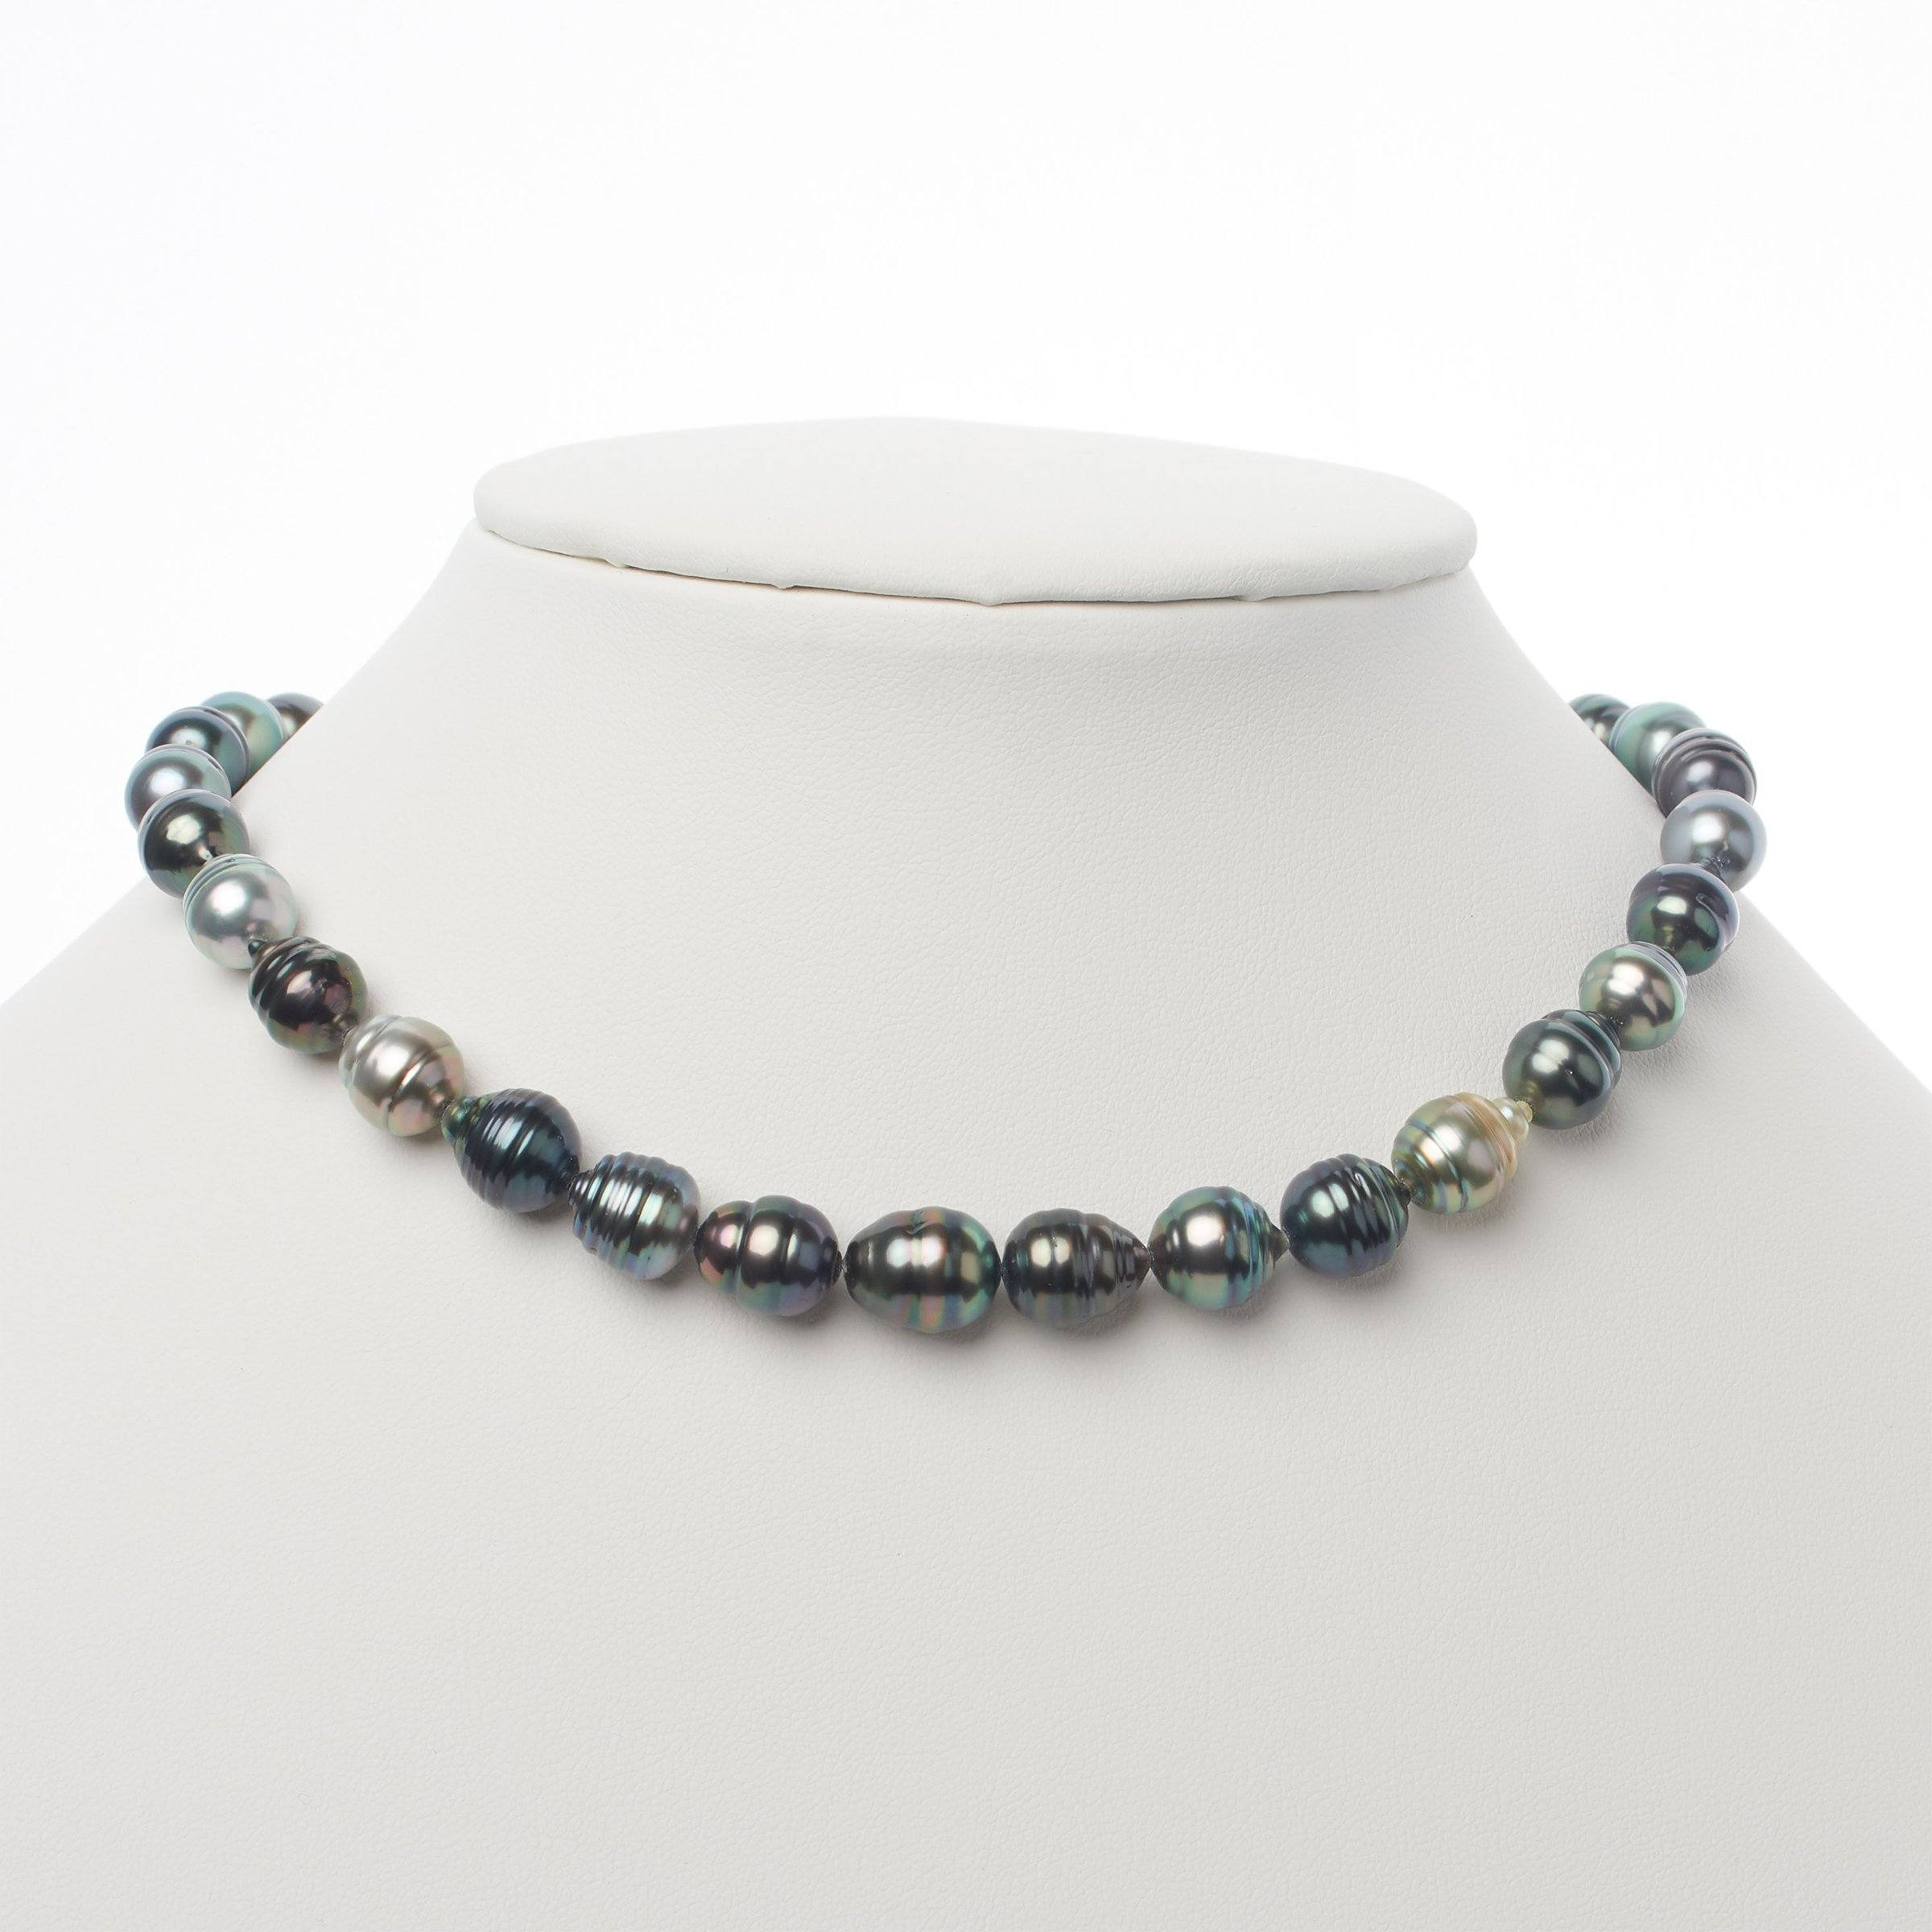 8.0-10.5 mm AA+/AAA Tahitian Baroque Pearl Necklace